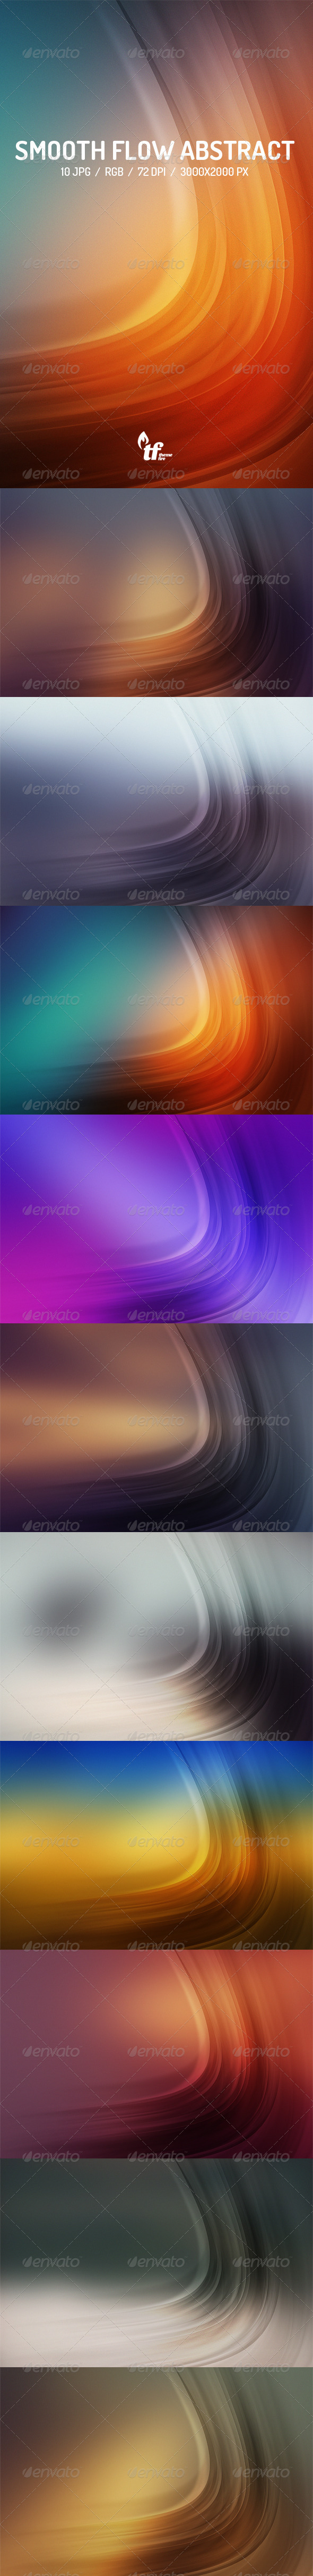 Smooth Flow Abstract Backgrounds